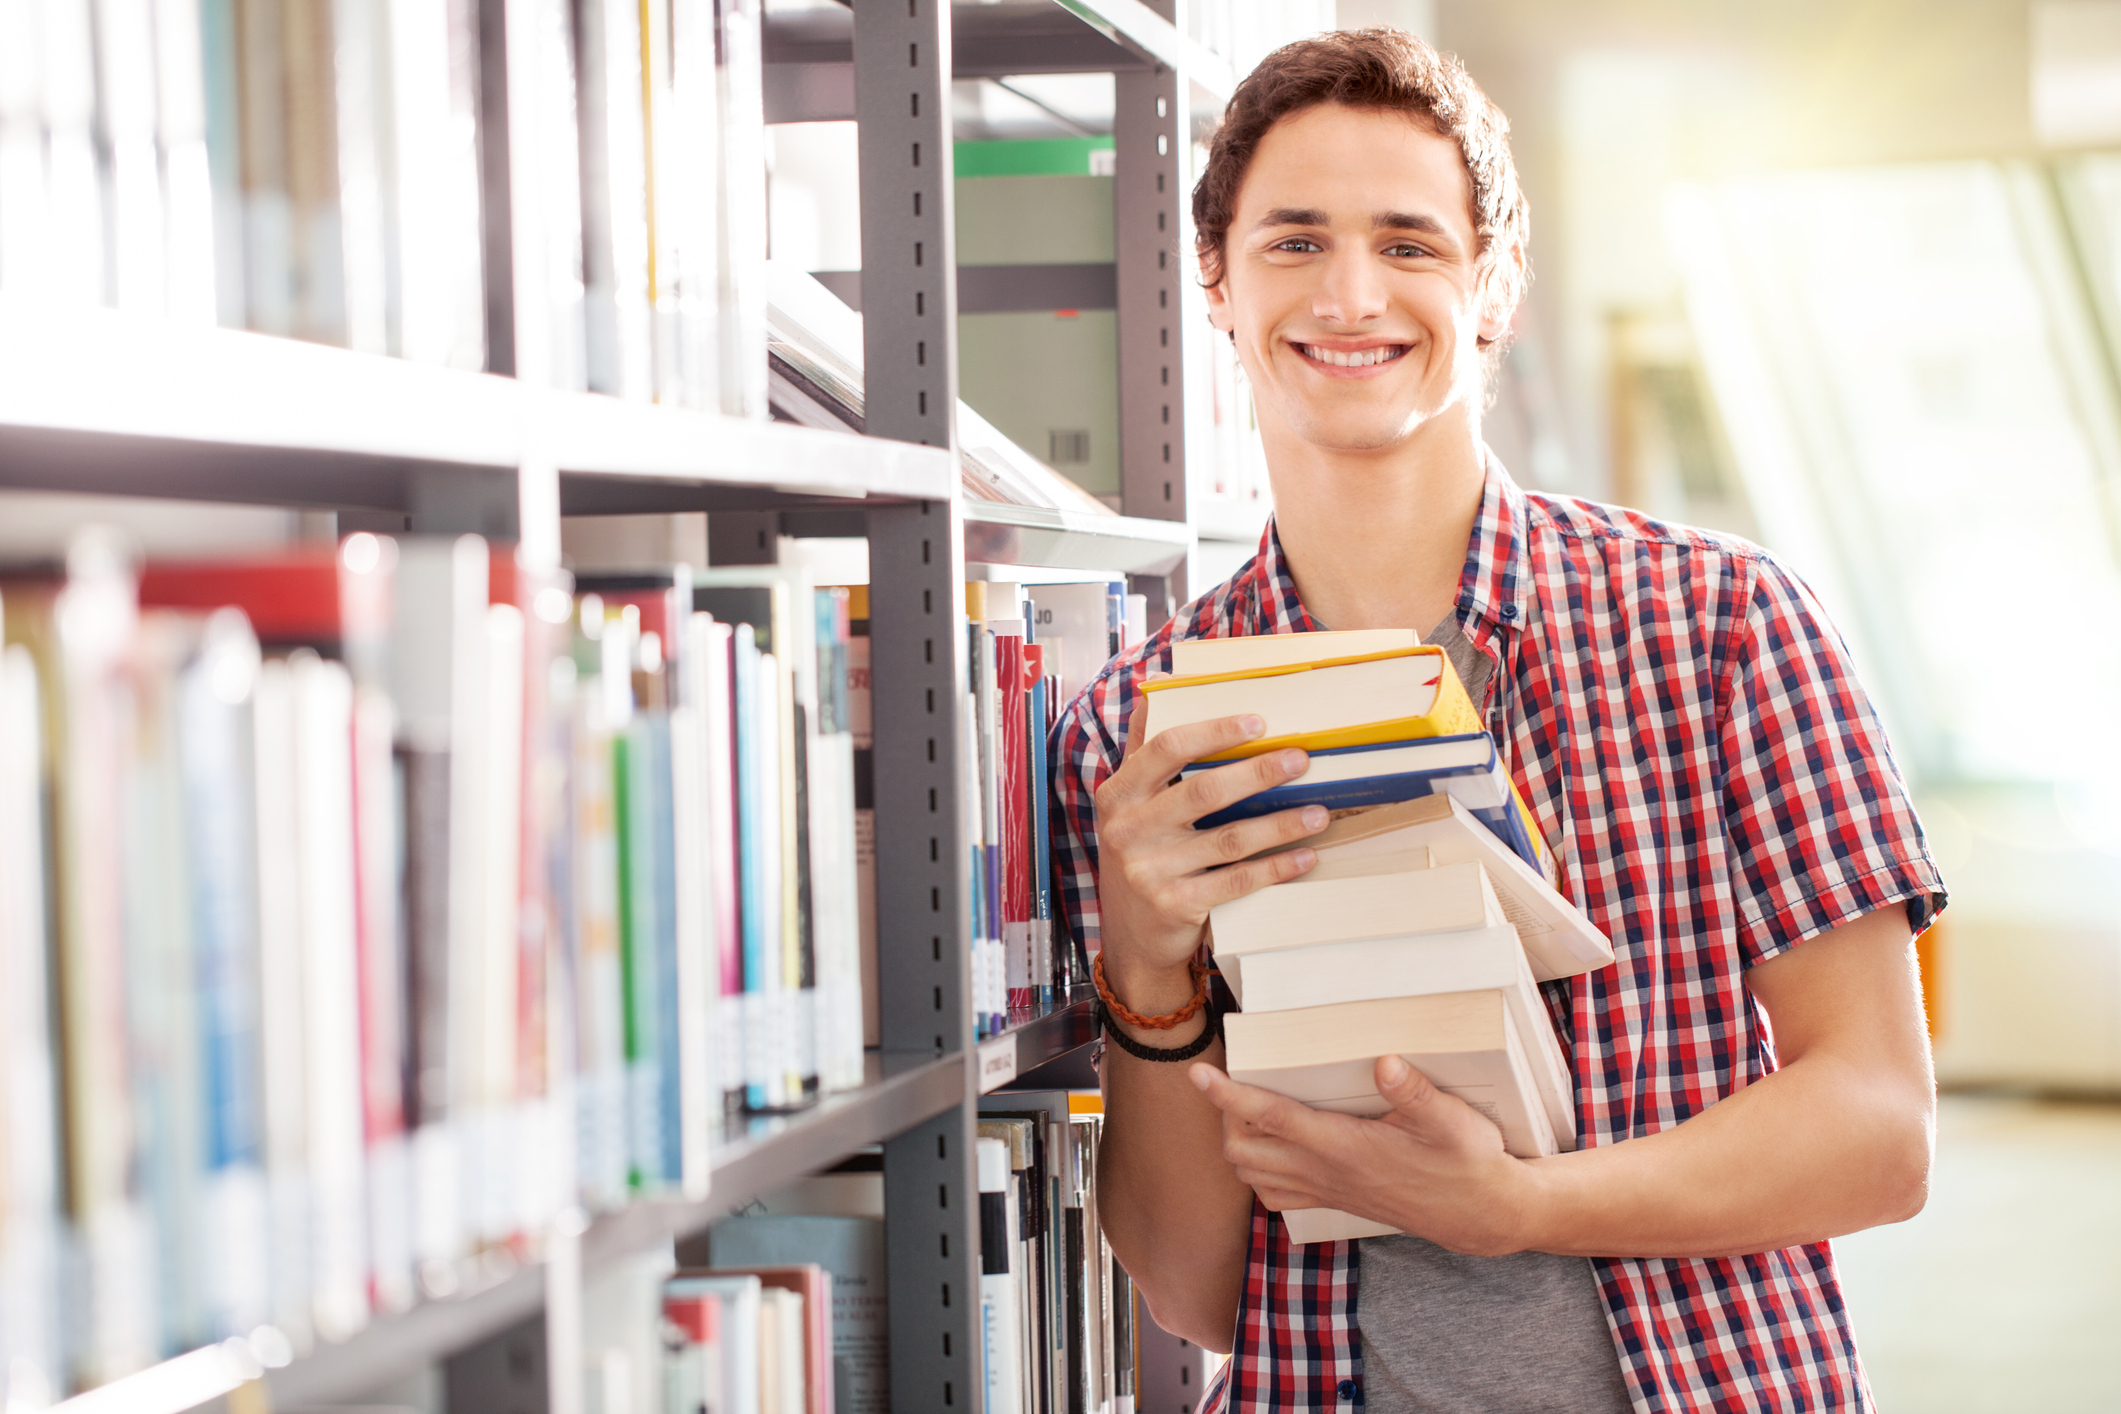 young-student-with-books-in-libraryjpg